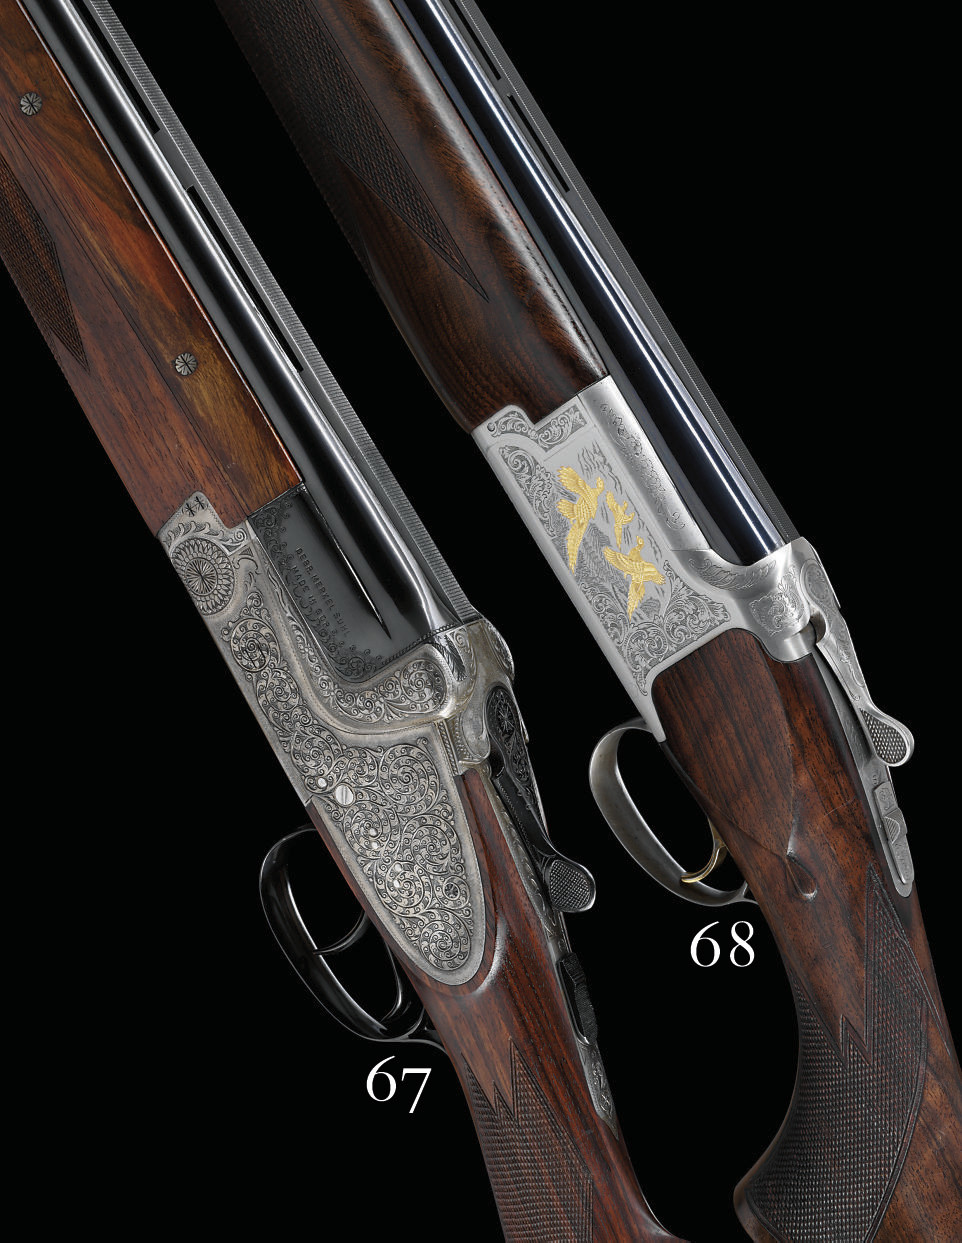 AN AS NEW 12-BORE '203 E' MODEL OVER-AND-UNDER SIDELOCK EJECTOR GUN BY GEBRUDER MERKEL, NO. 90601